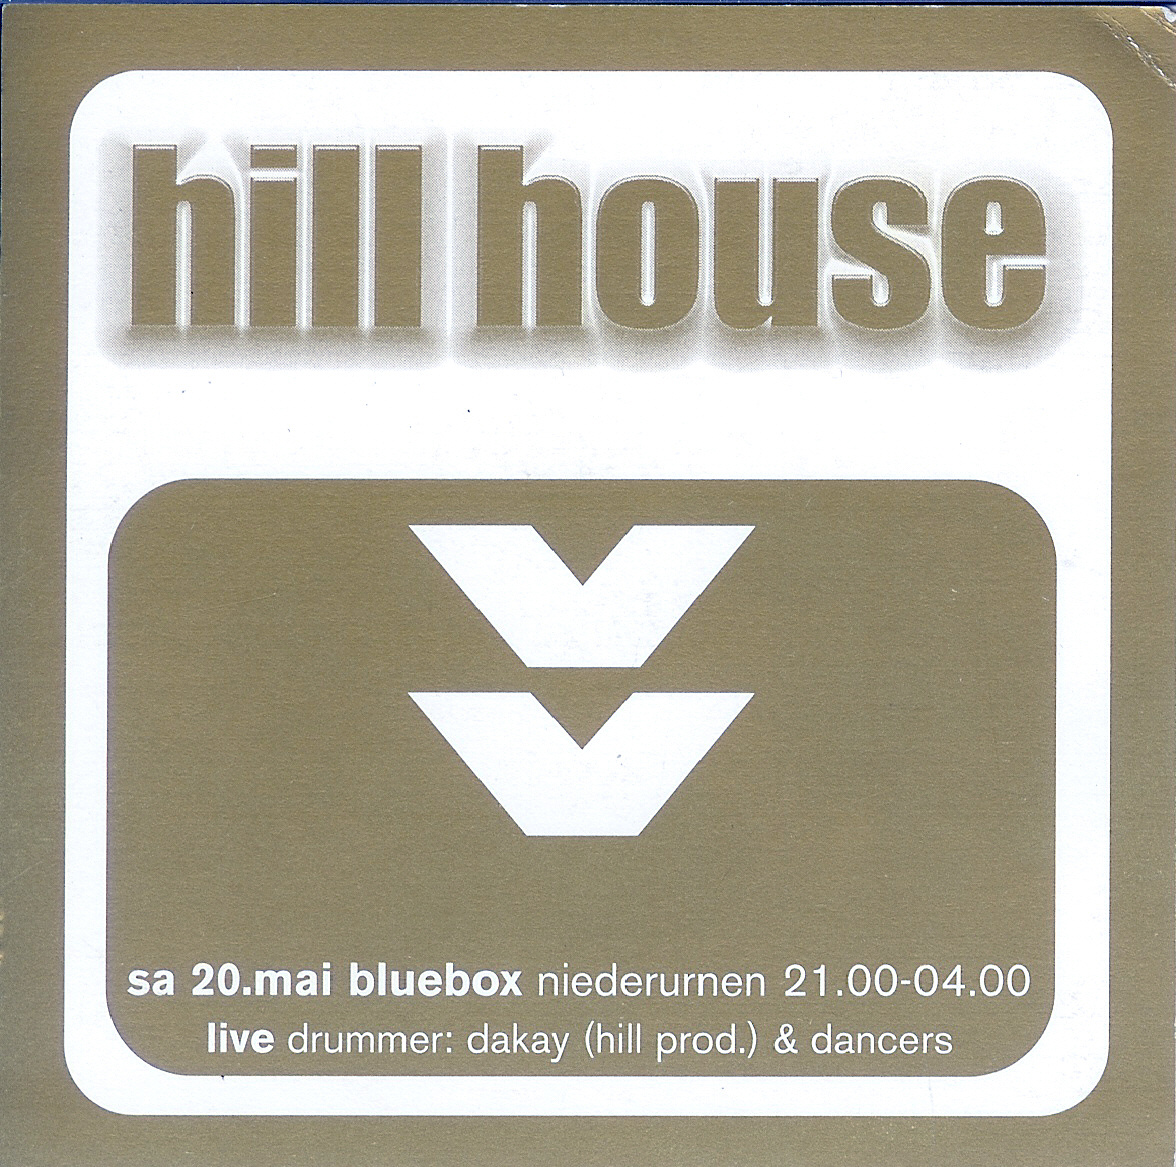 hill house_20.5.2000